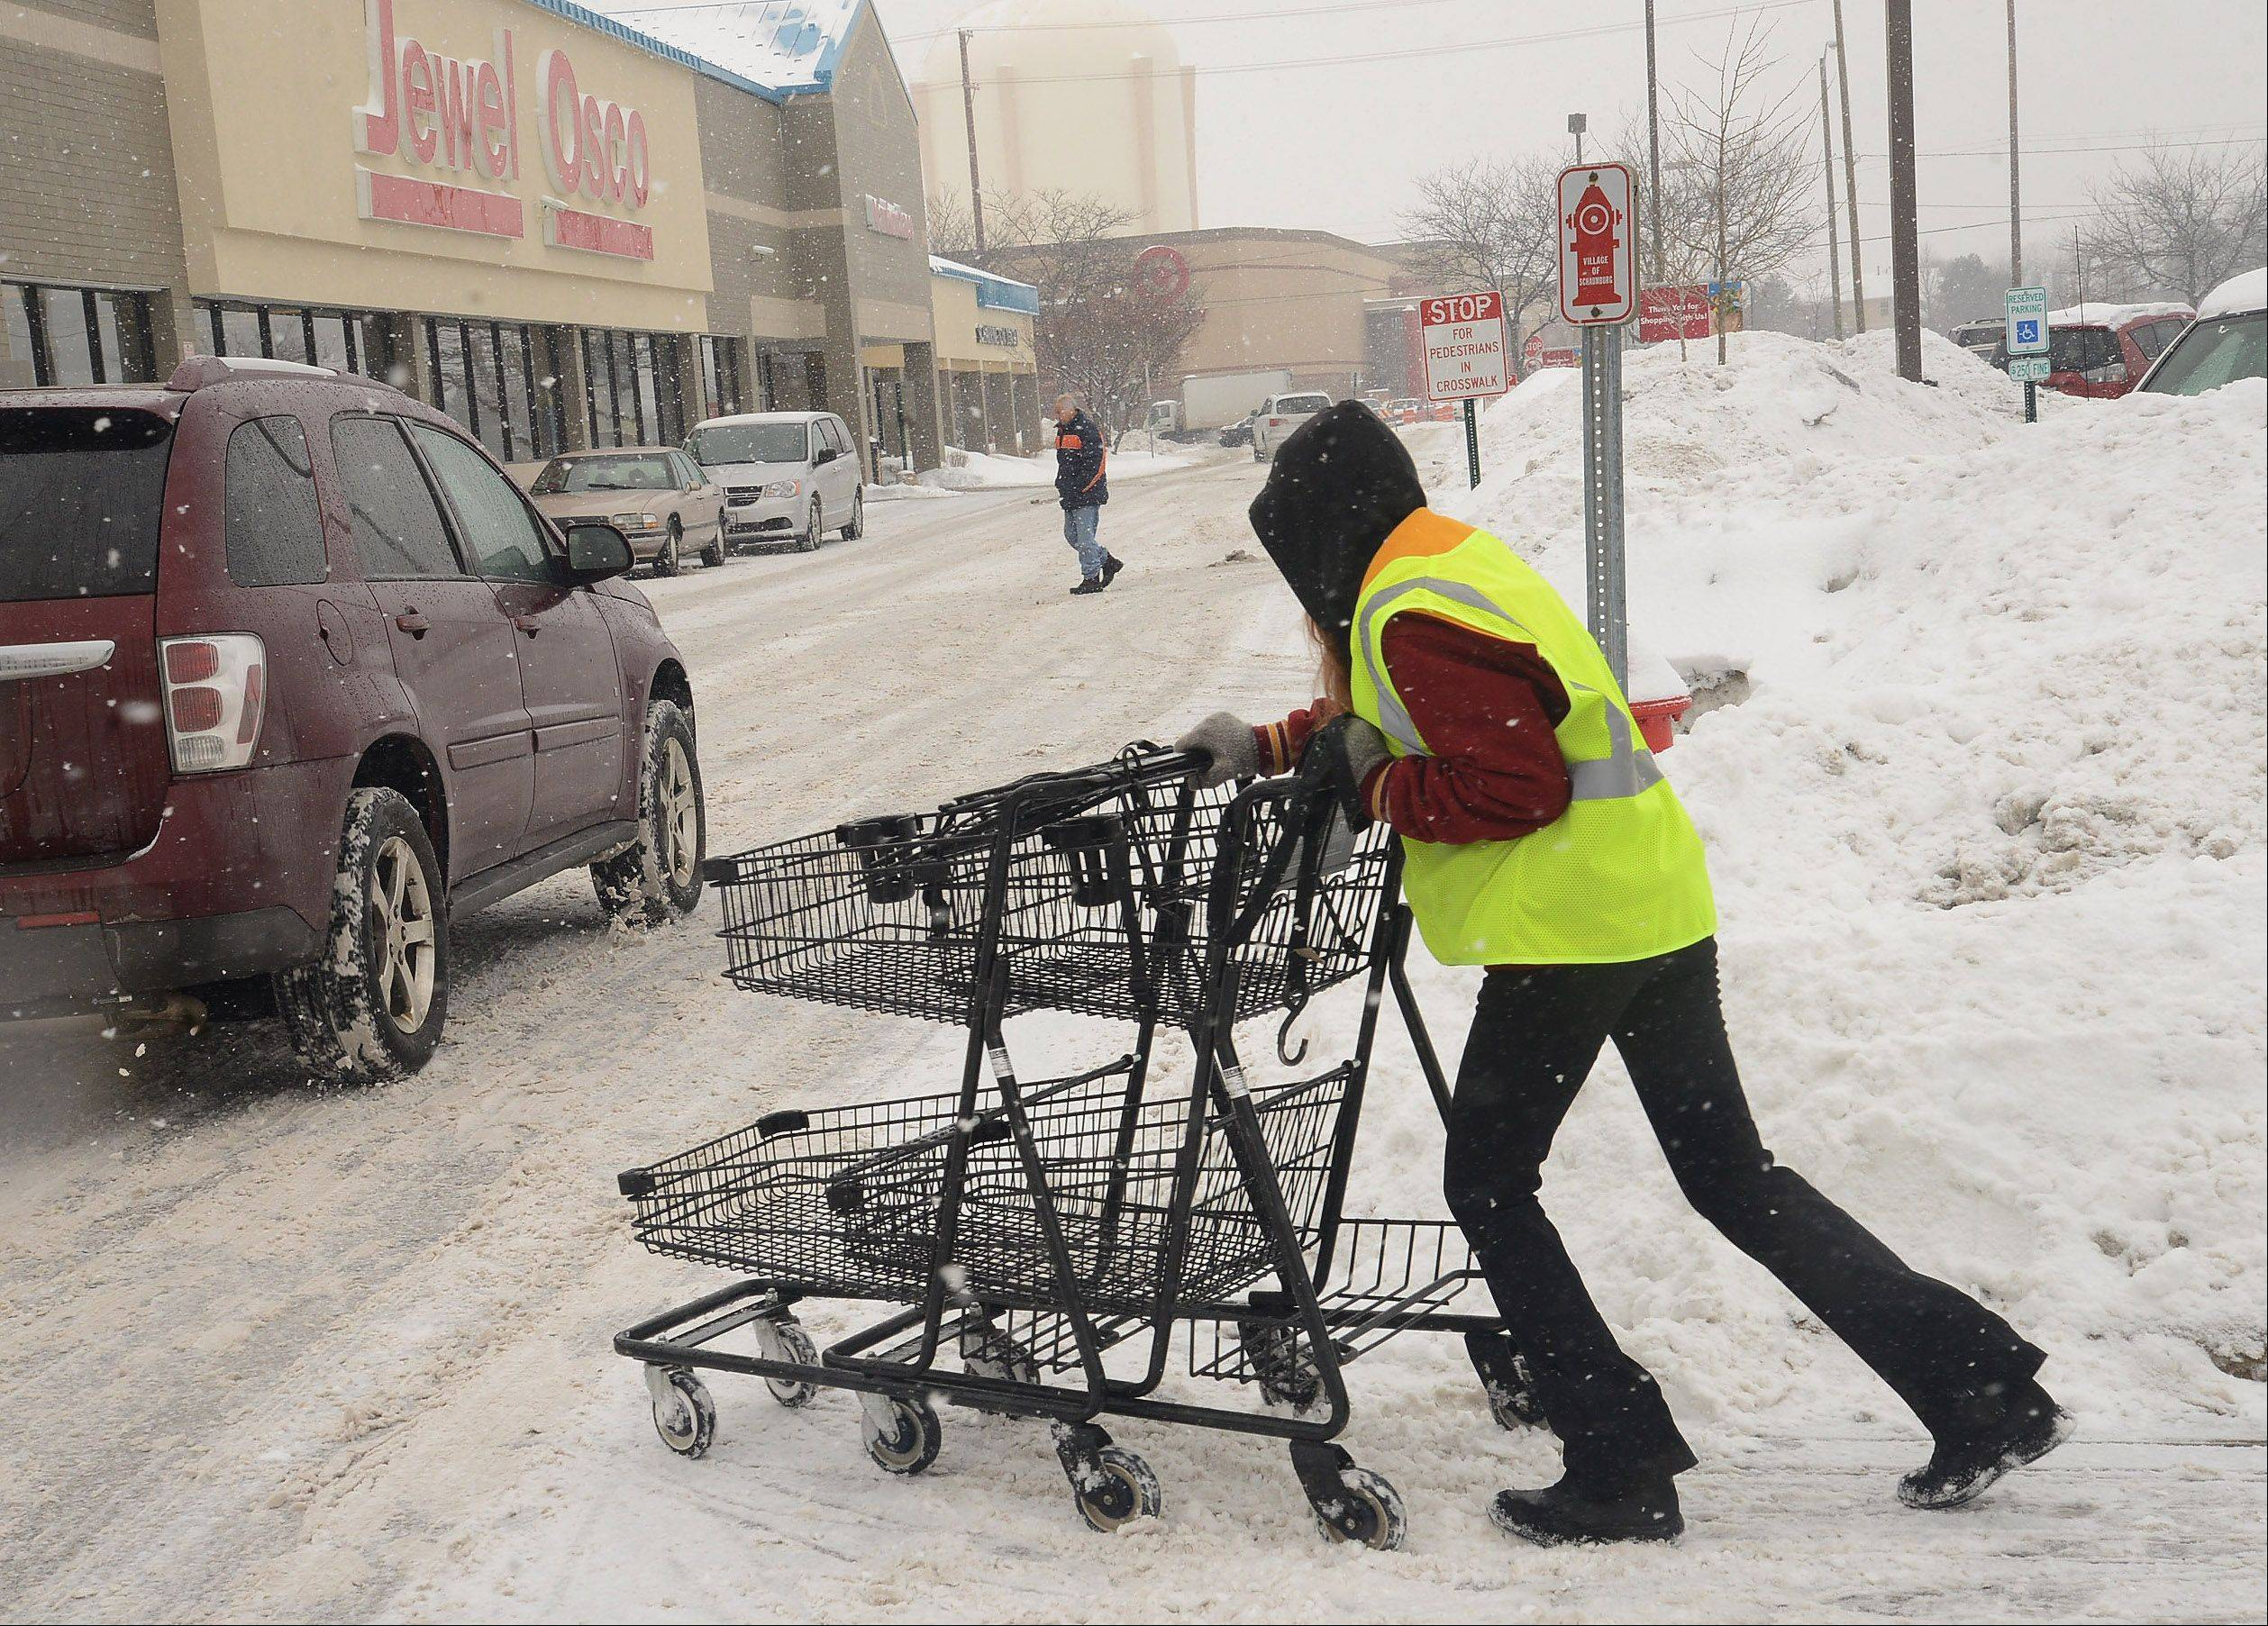 Becca Chapin retrieves some shopping carts at a Jewel Osco in Schaumburg Saturday.